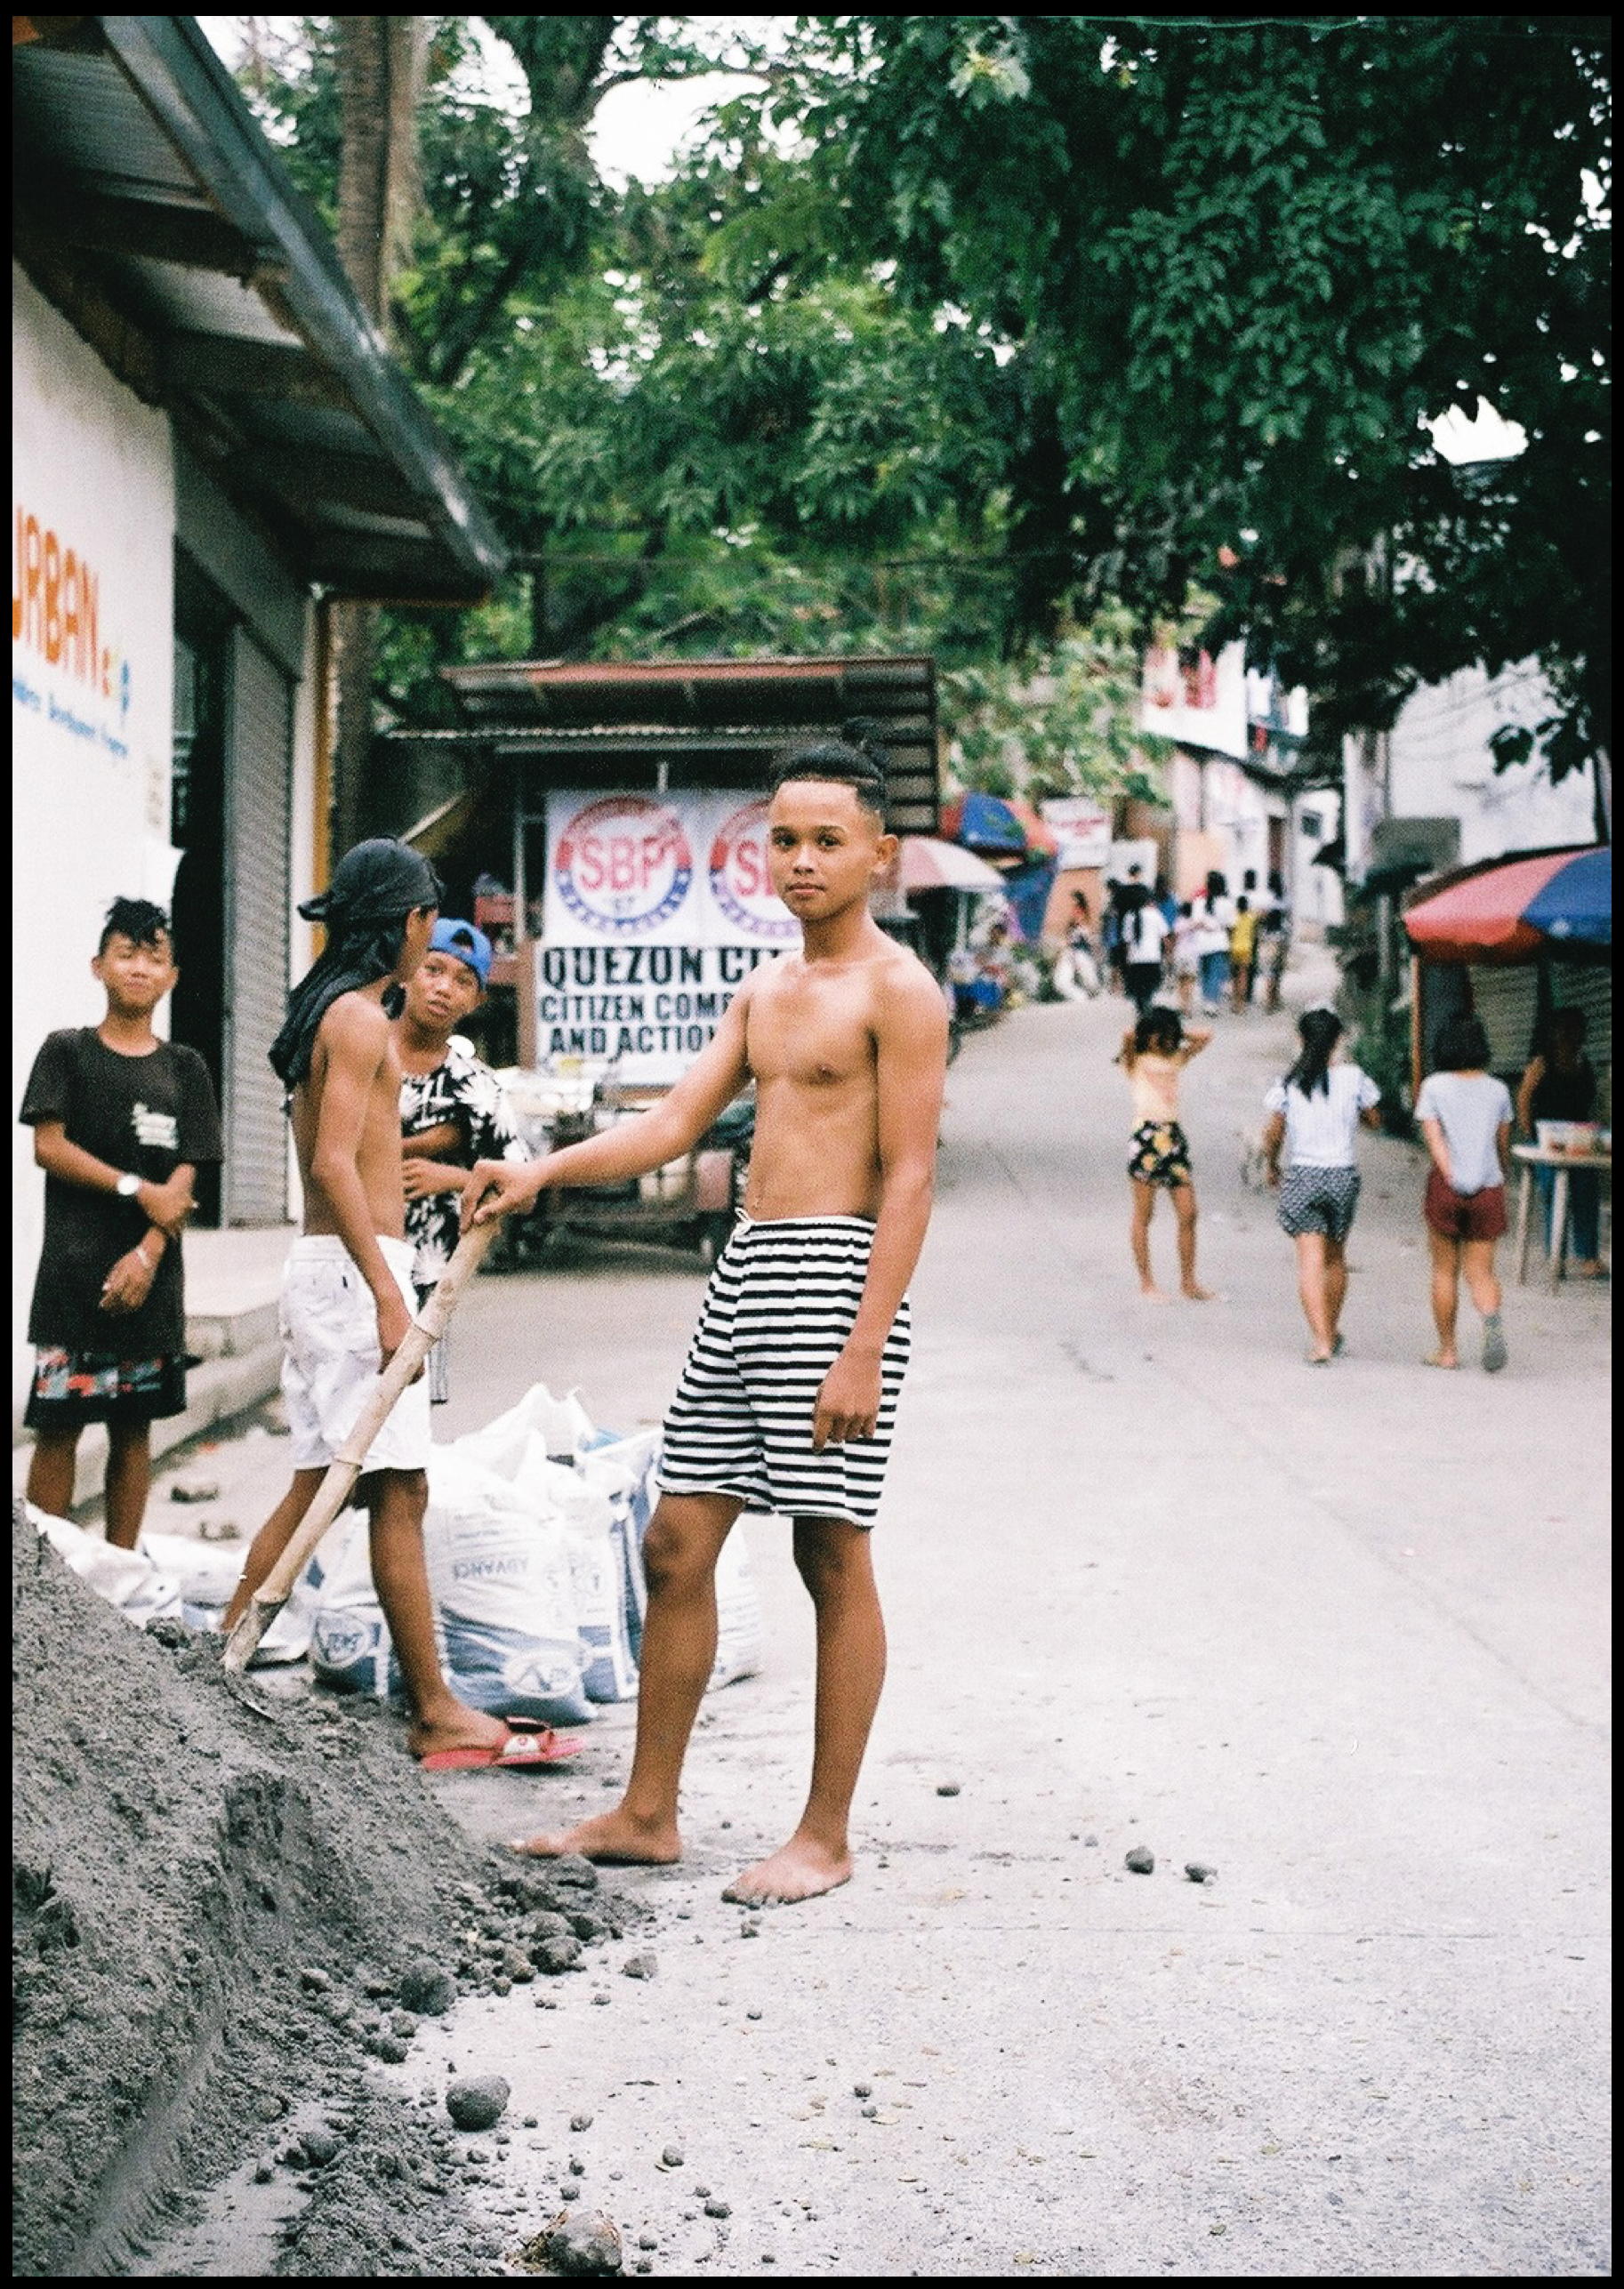 CoxCo_daily_life_Philippines_02 2019-08-12 0.39.33.png